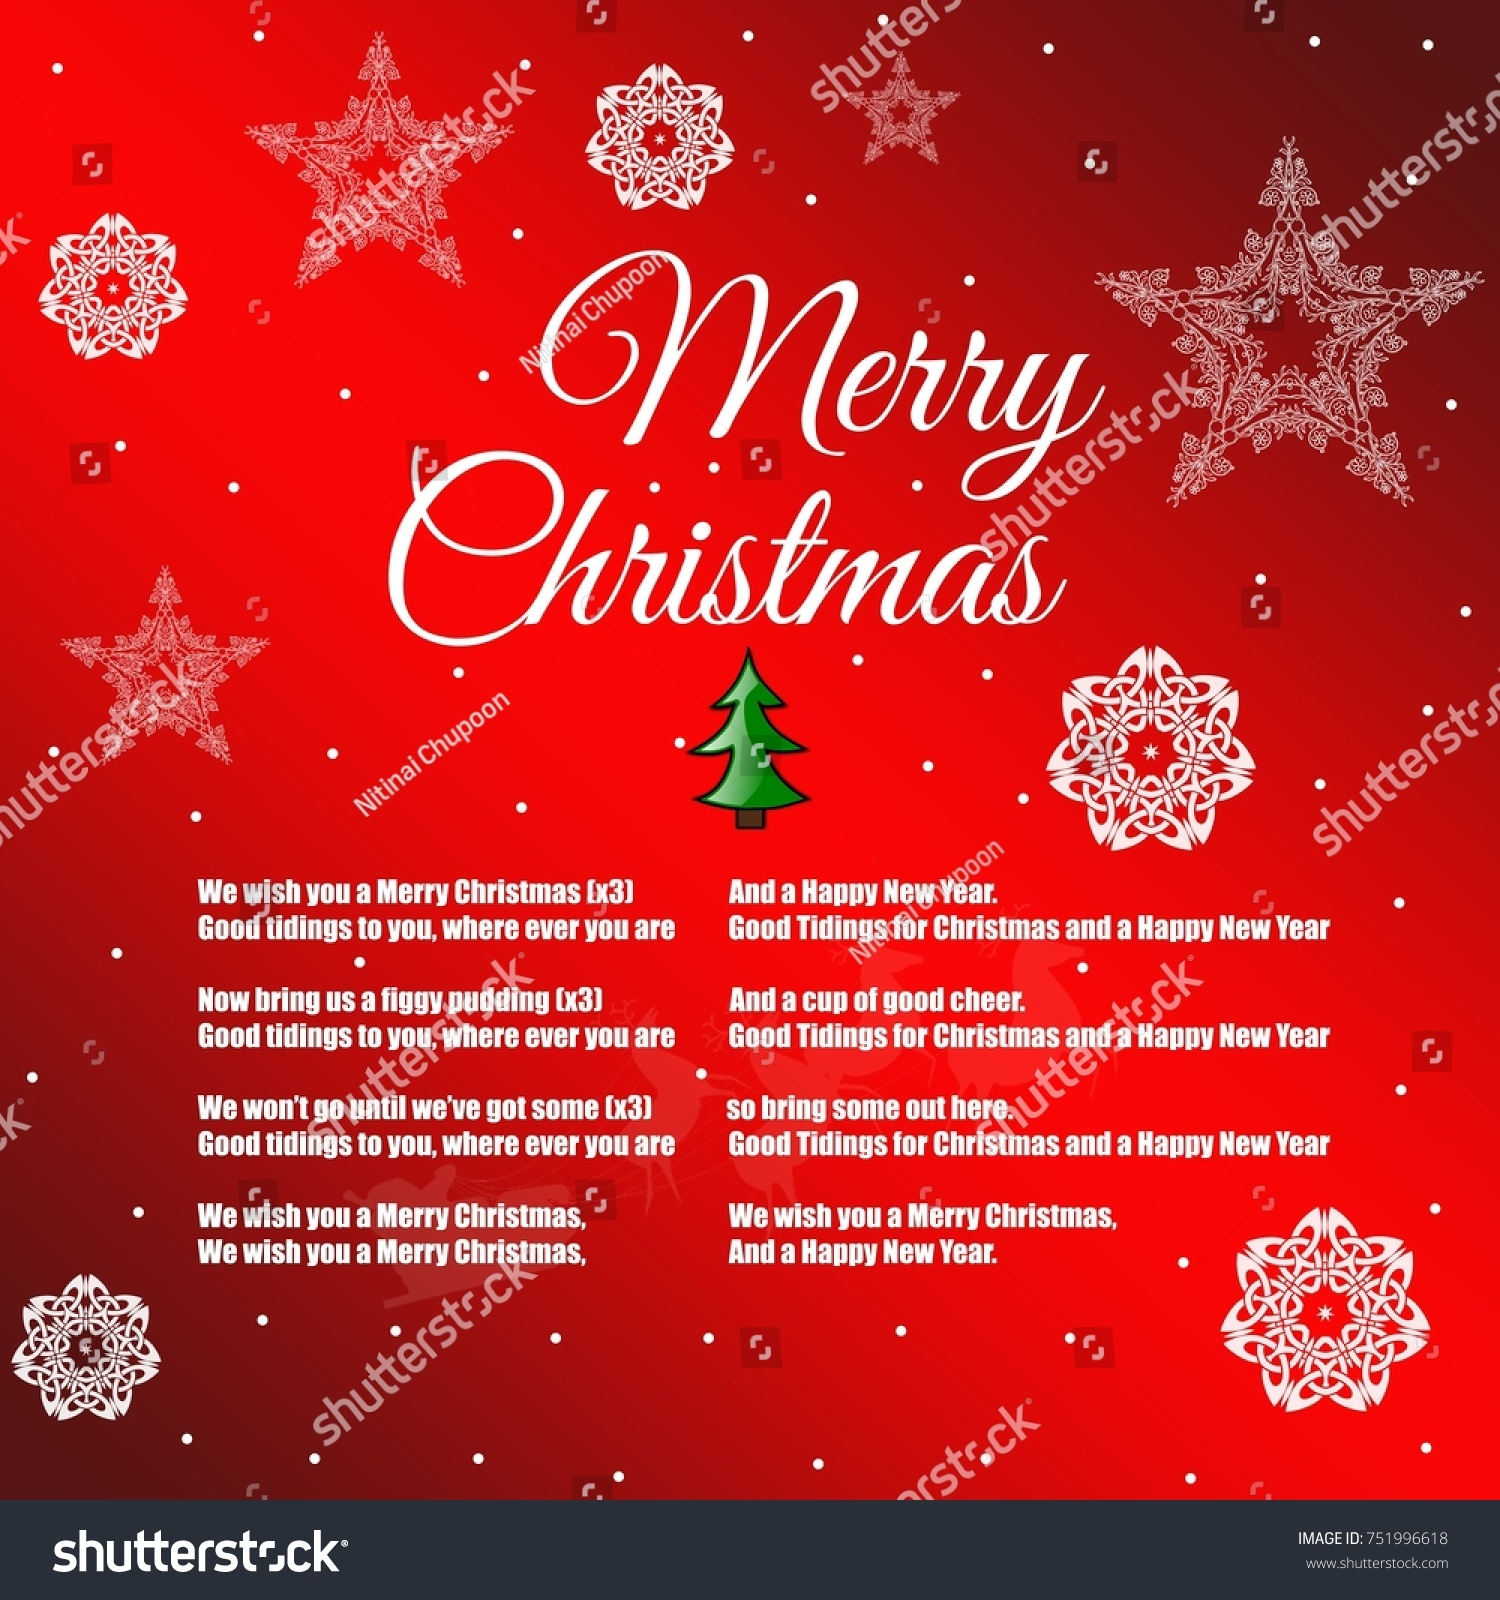 Merry christmas happy new year 2018 stock illustration 751996618 merry christmas and happy new year 2018 greeting card with the words of a song kristyandbryce Choice Image